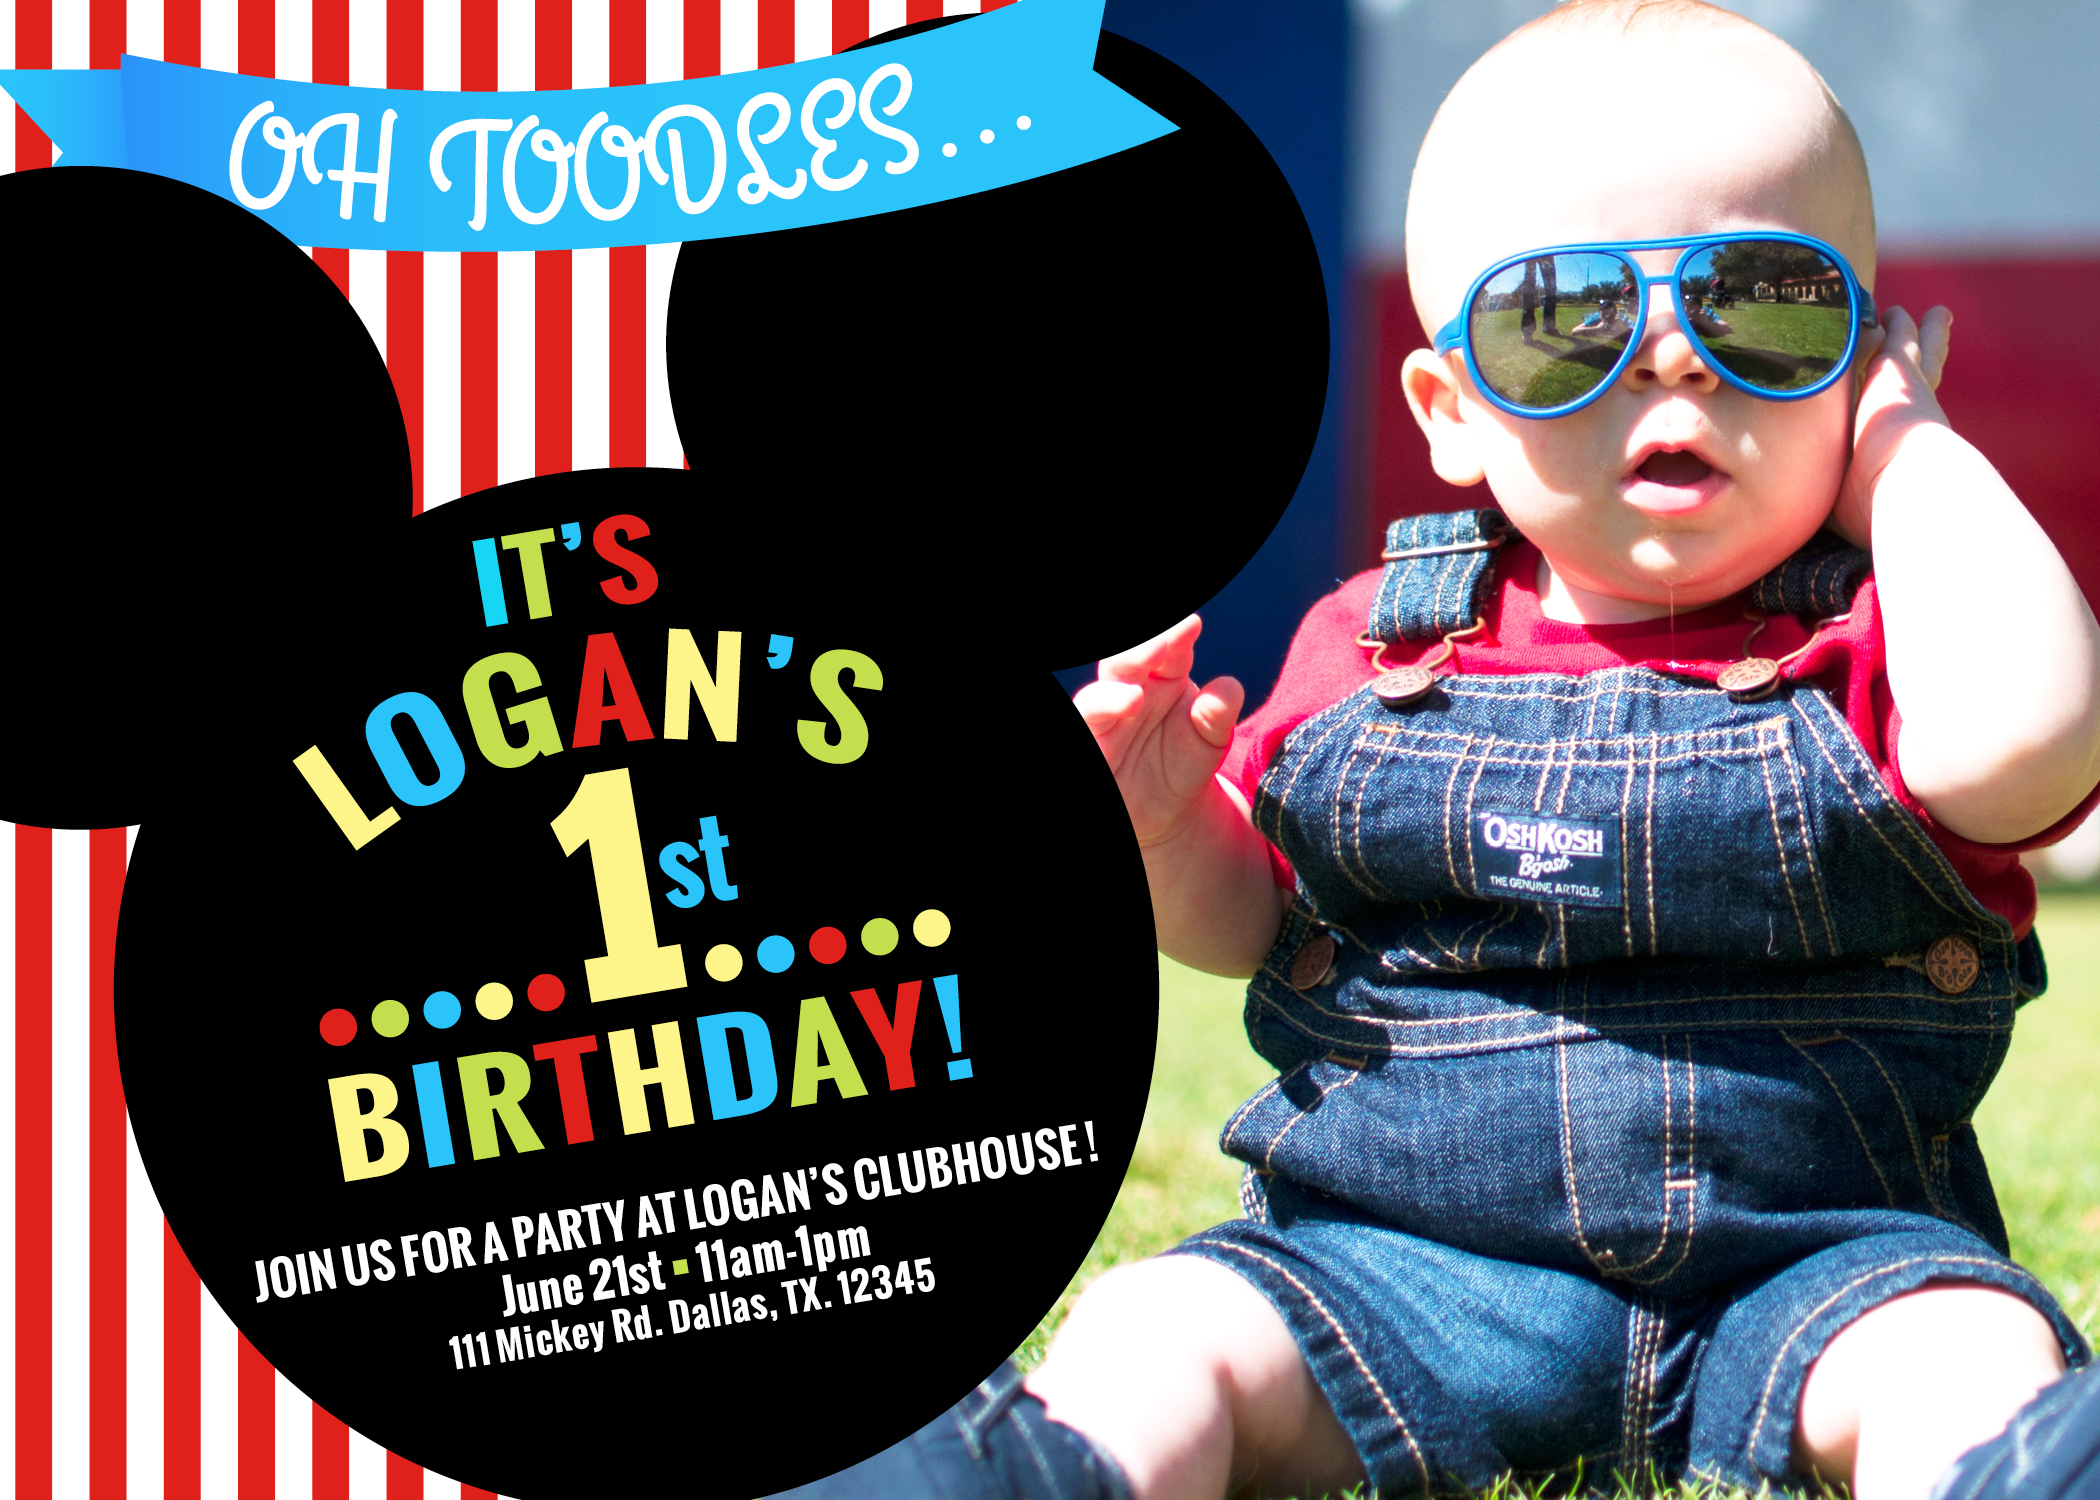 Logan's 1st Birthday Invitation.jpg